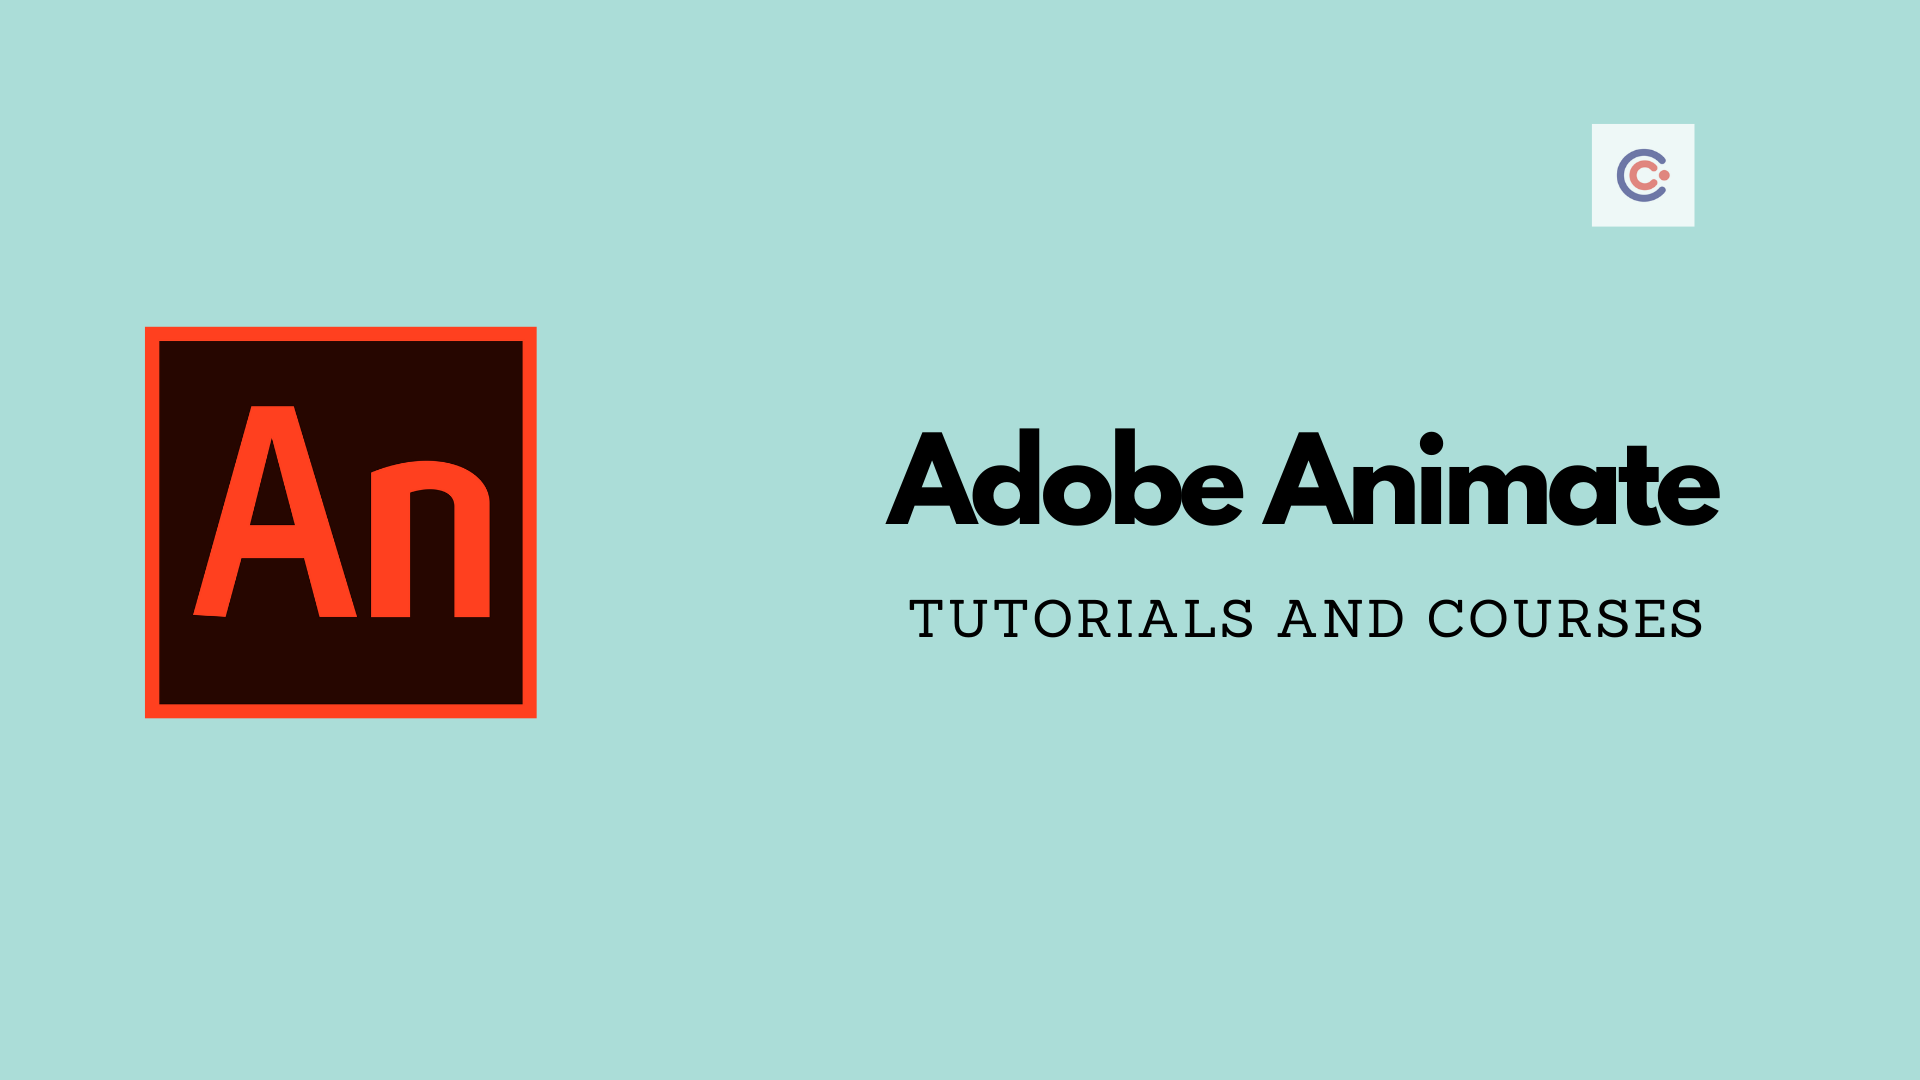 9 Best Adobe Animate Tutorials & Courses - Learn Adobe Animate Online